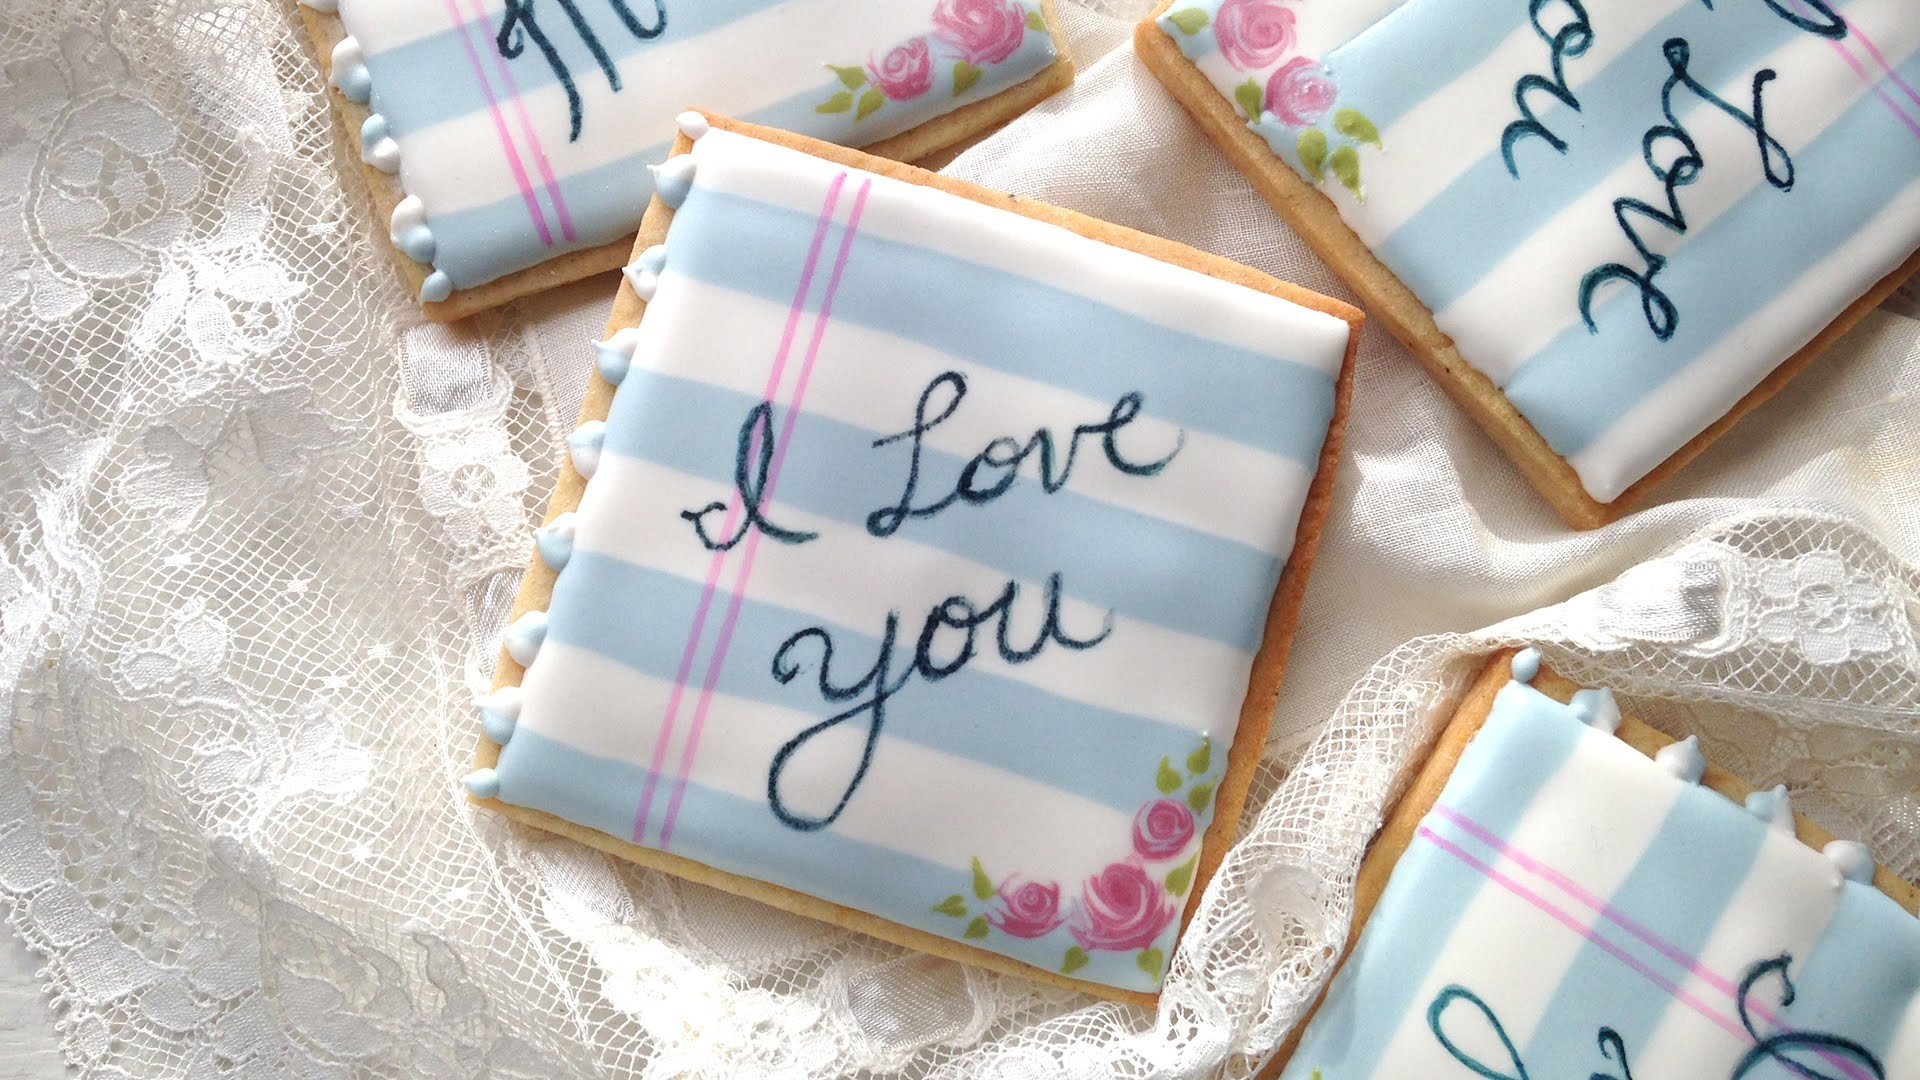 How To Decorate Love Note Cookies For Valentine's Day!